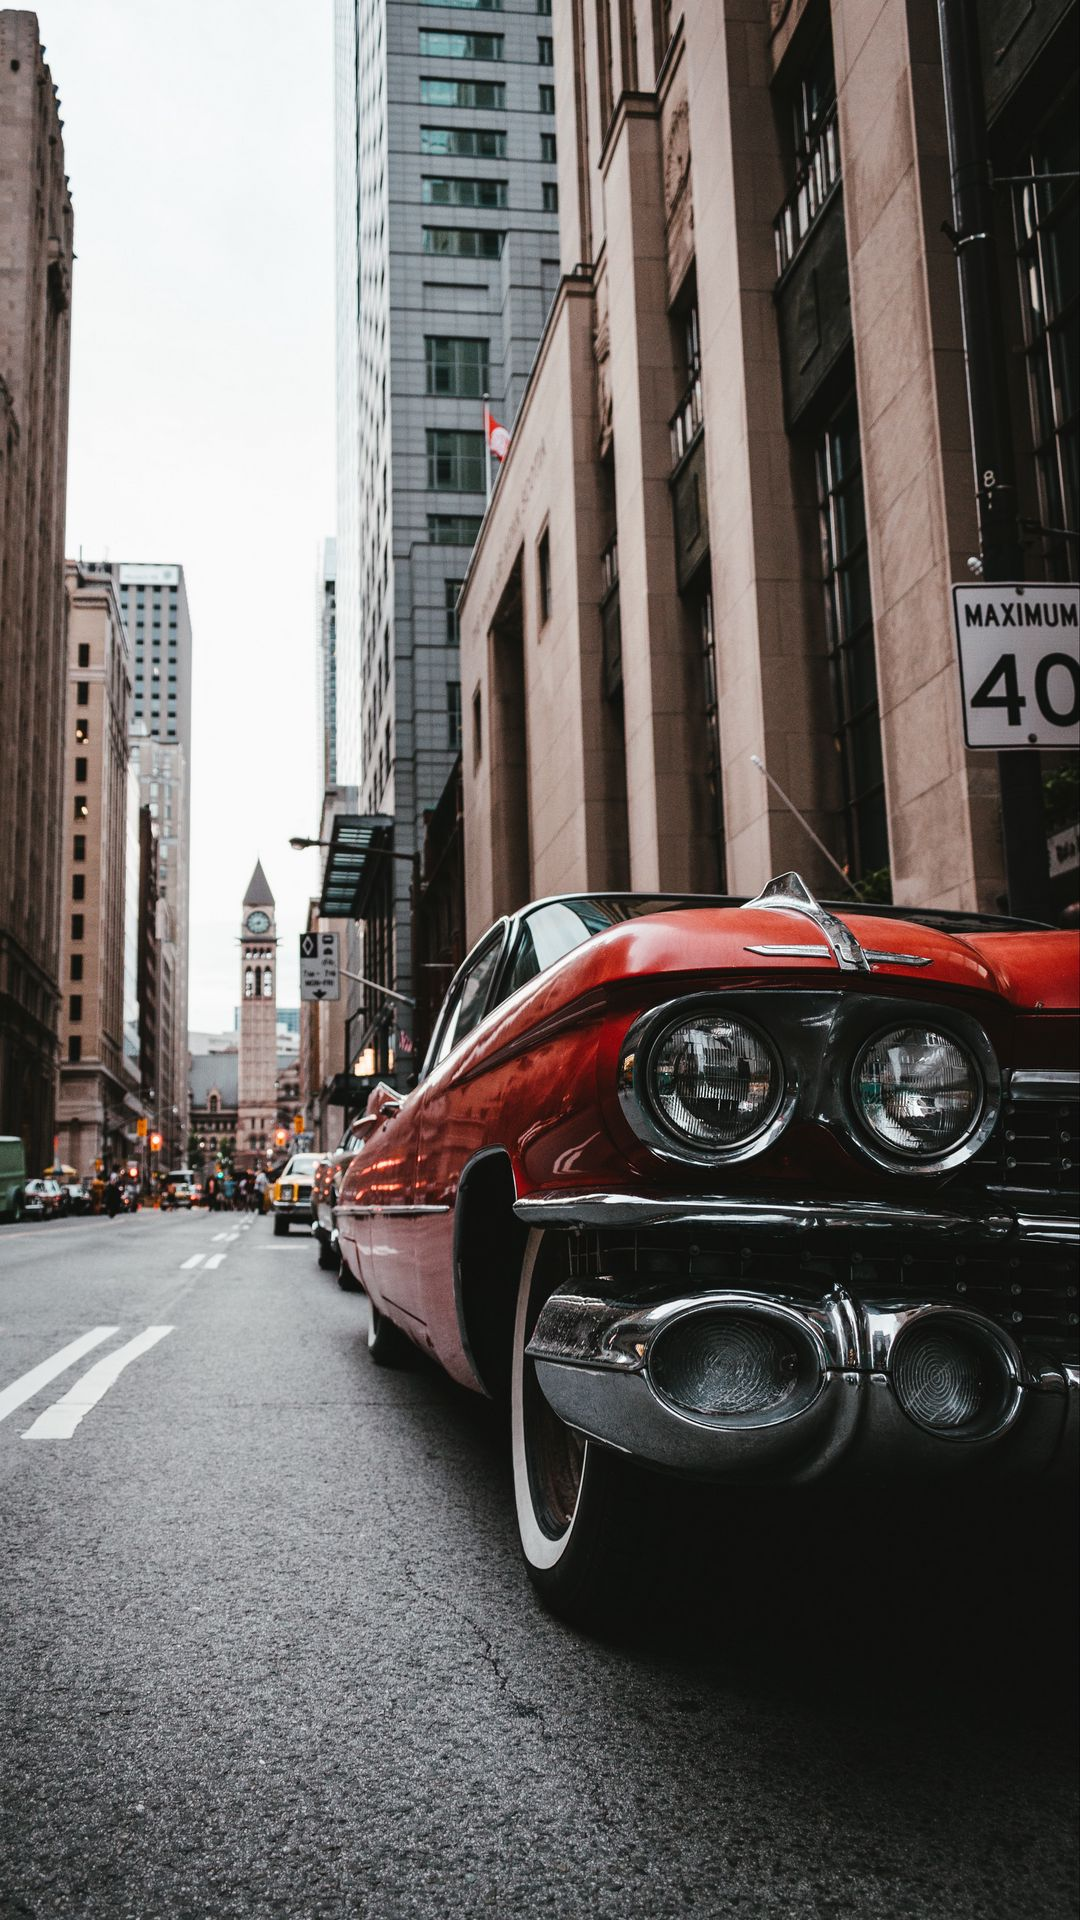 Old Car Street Wallpapers Free Download for Mobile